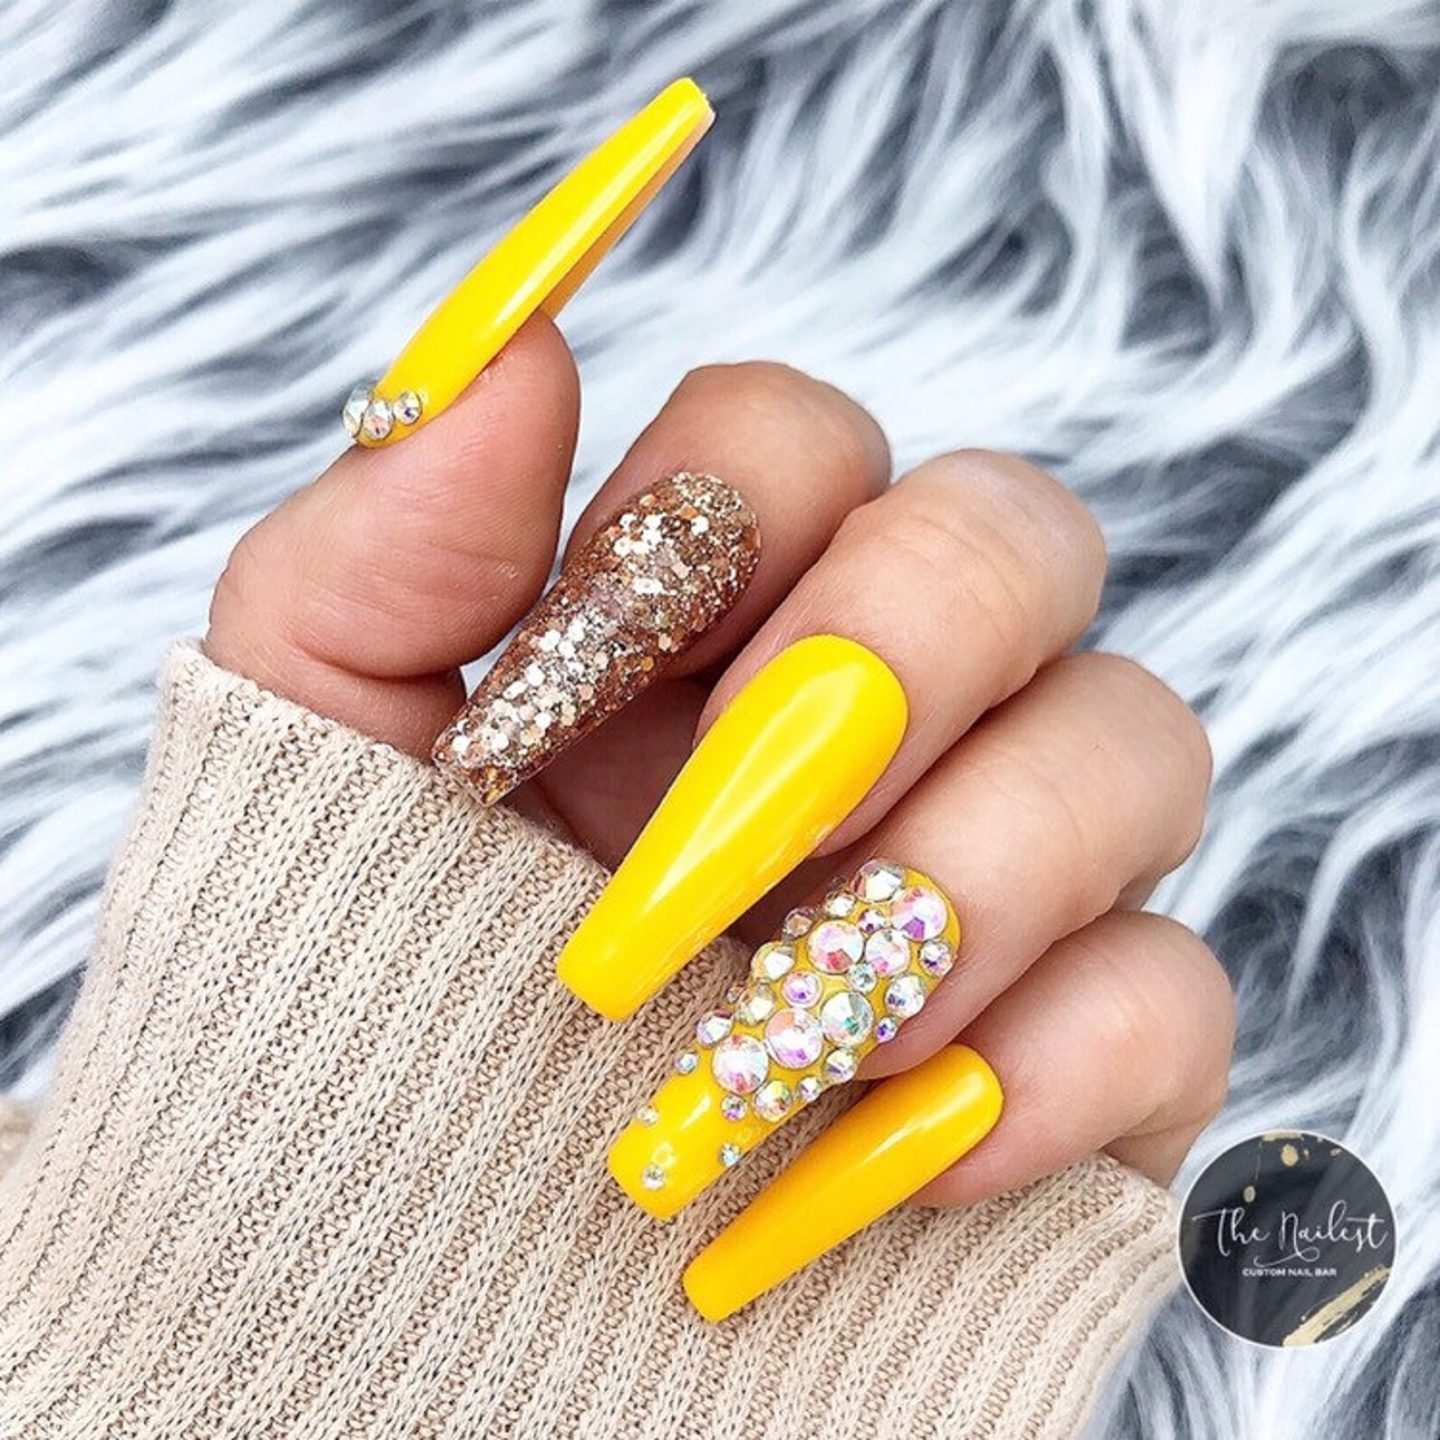 Yellow and gold nails with rhinestones and glitter